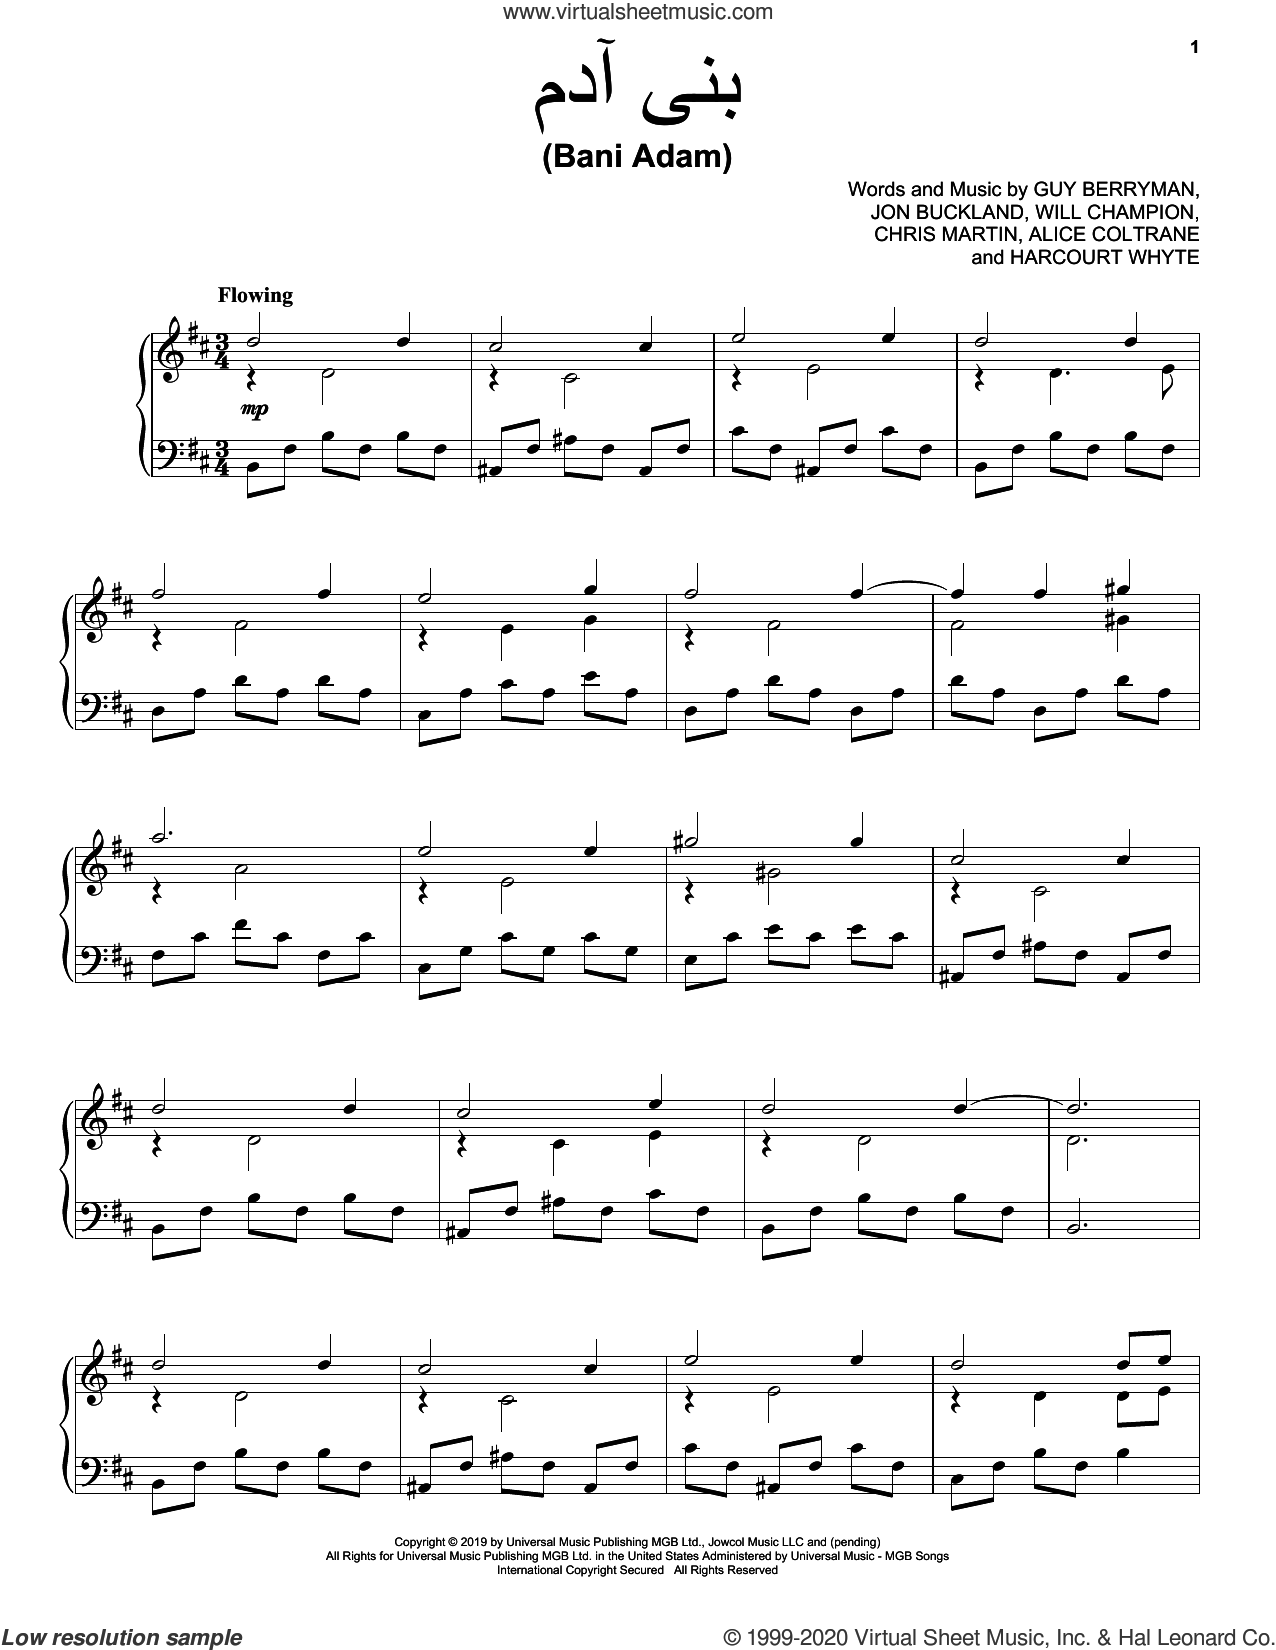 Bani Adam sheet music for voice, piano or guitar by Coldplay, Alice Coltrane, Chris Martin, Guy Berryman, Harcourt Whyte, Jon Buckland and Will Champion, intermediate skill level